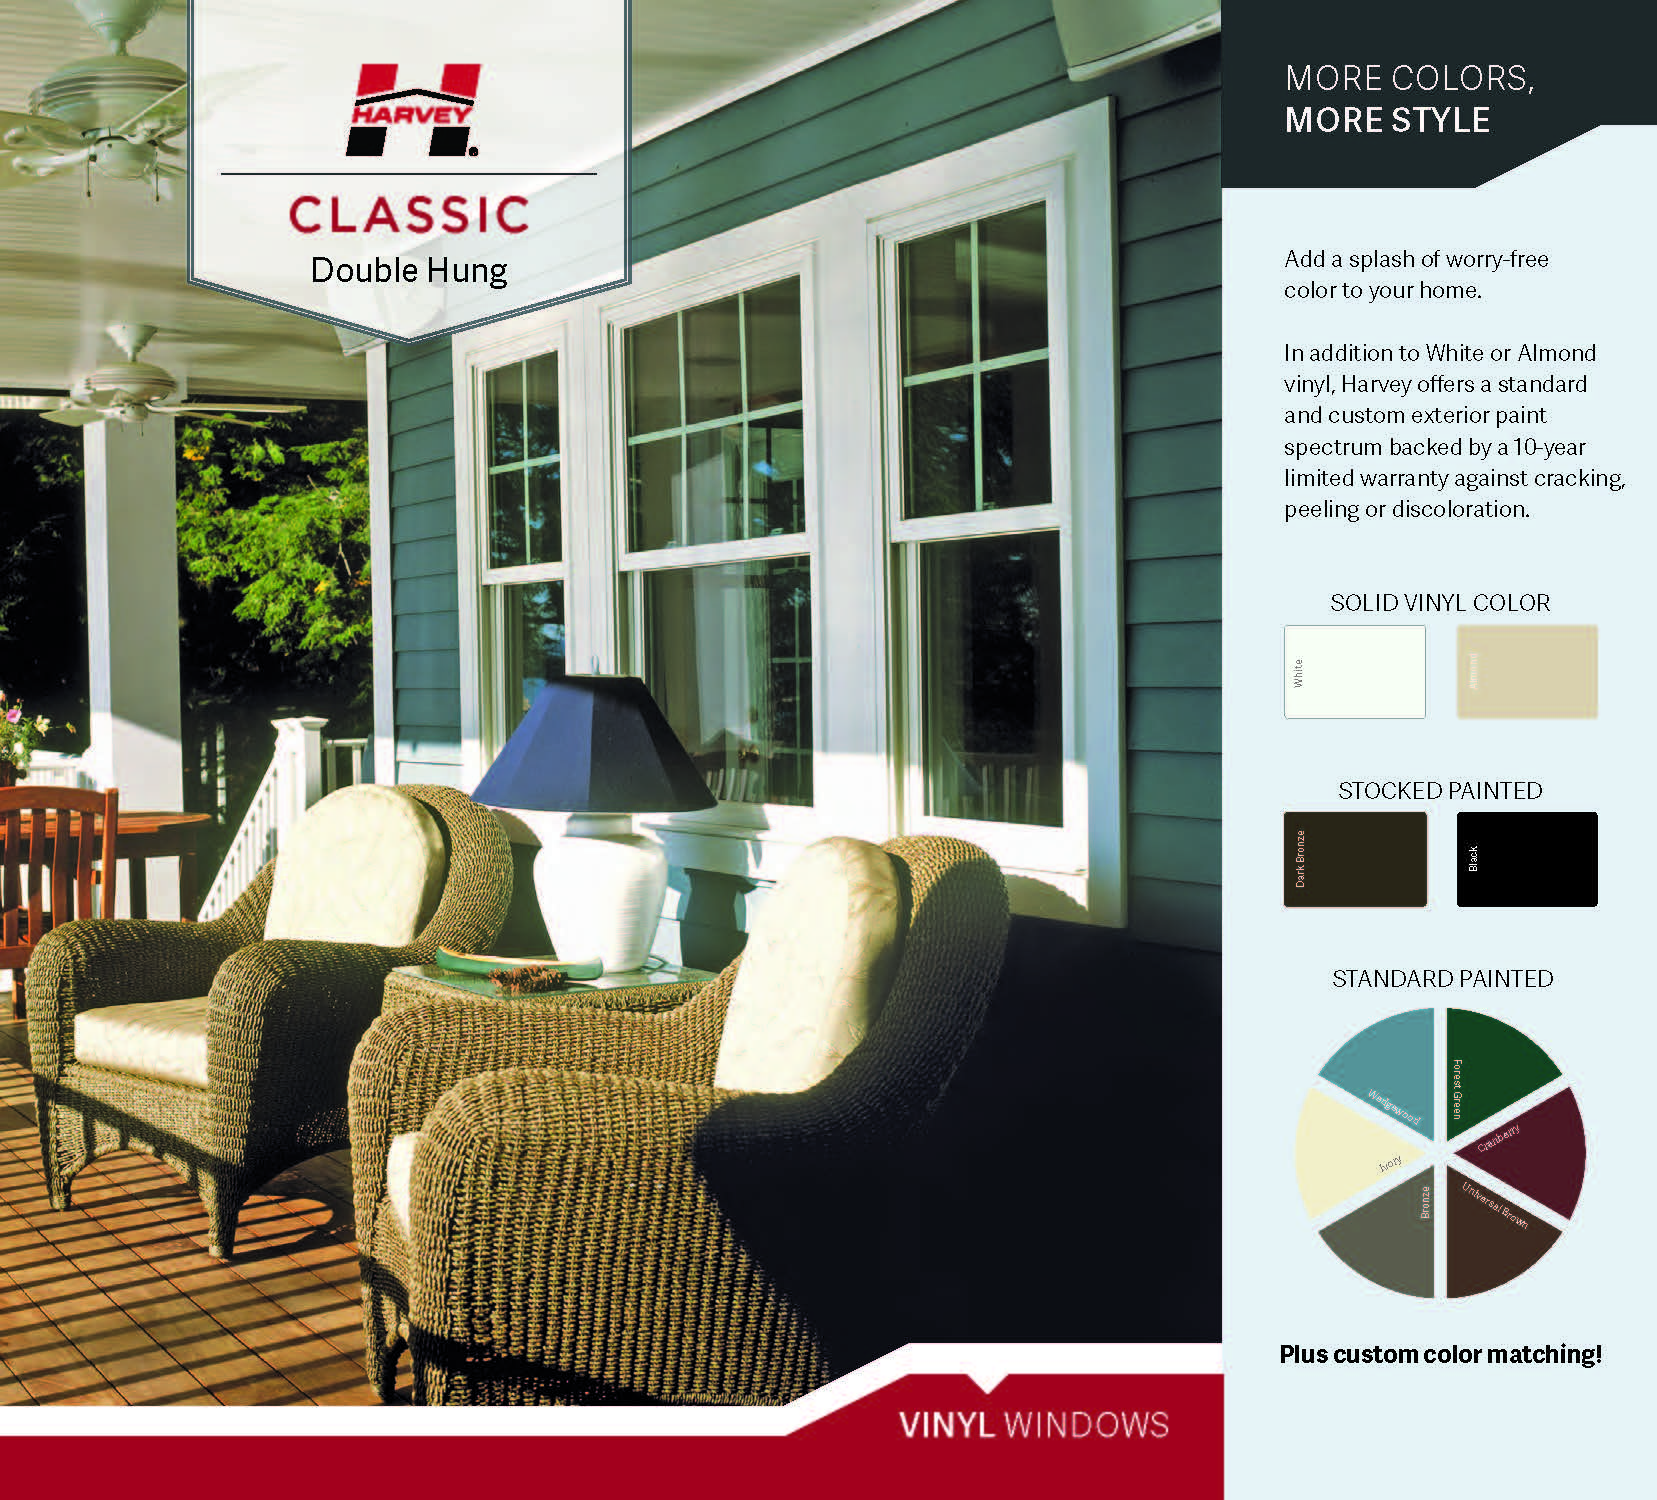 2nd tier window upgrade Colors harvey classic double hung vinyl windows Page 1 Garage Upgrades & Options